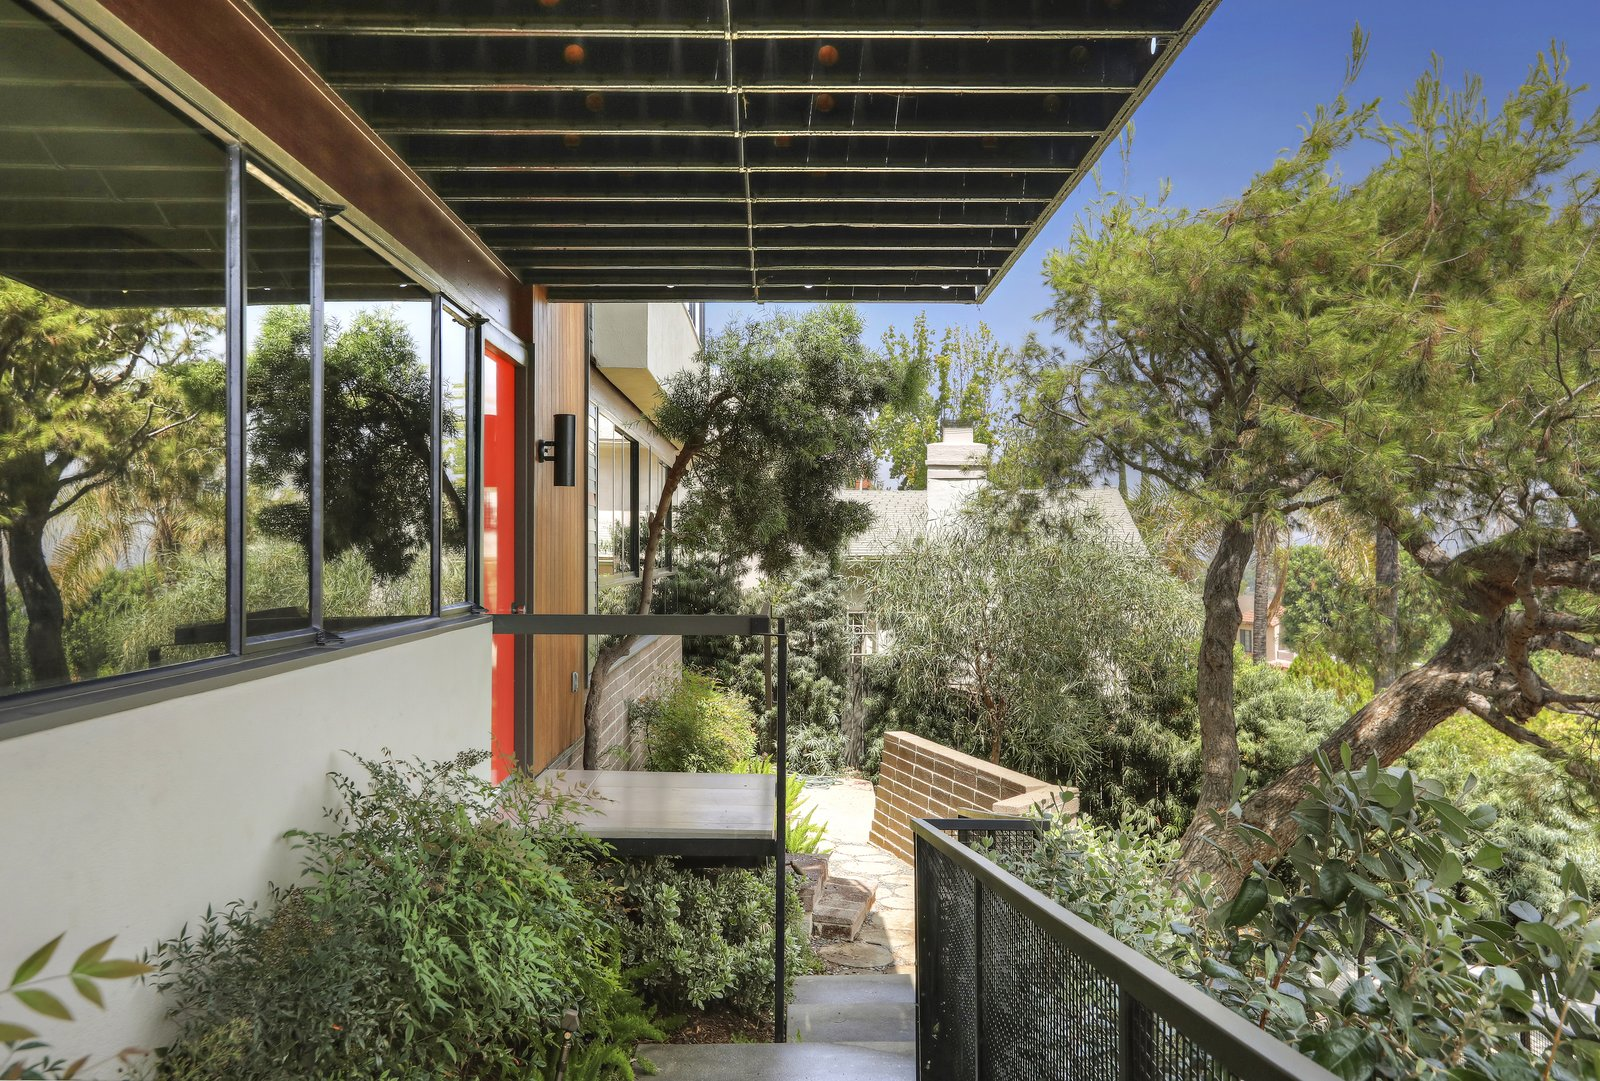 Outdoor, Pavers, Shrubs, Trees, Small, Walkways, Stone, Metal, Horizontal, Hanging, Boulders, Retaining, and Front Yard The entrance showcases the home's clean midcentury lines.     Outdoor Boulders Trees Metal Hanging Front Yard Small Photos from A Thoughtfully Updated Hillside Home in L.A. Lists For $5.12M